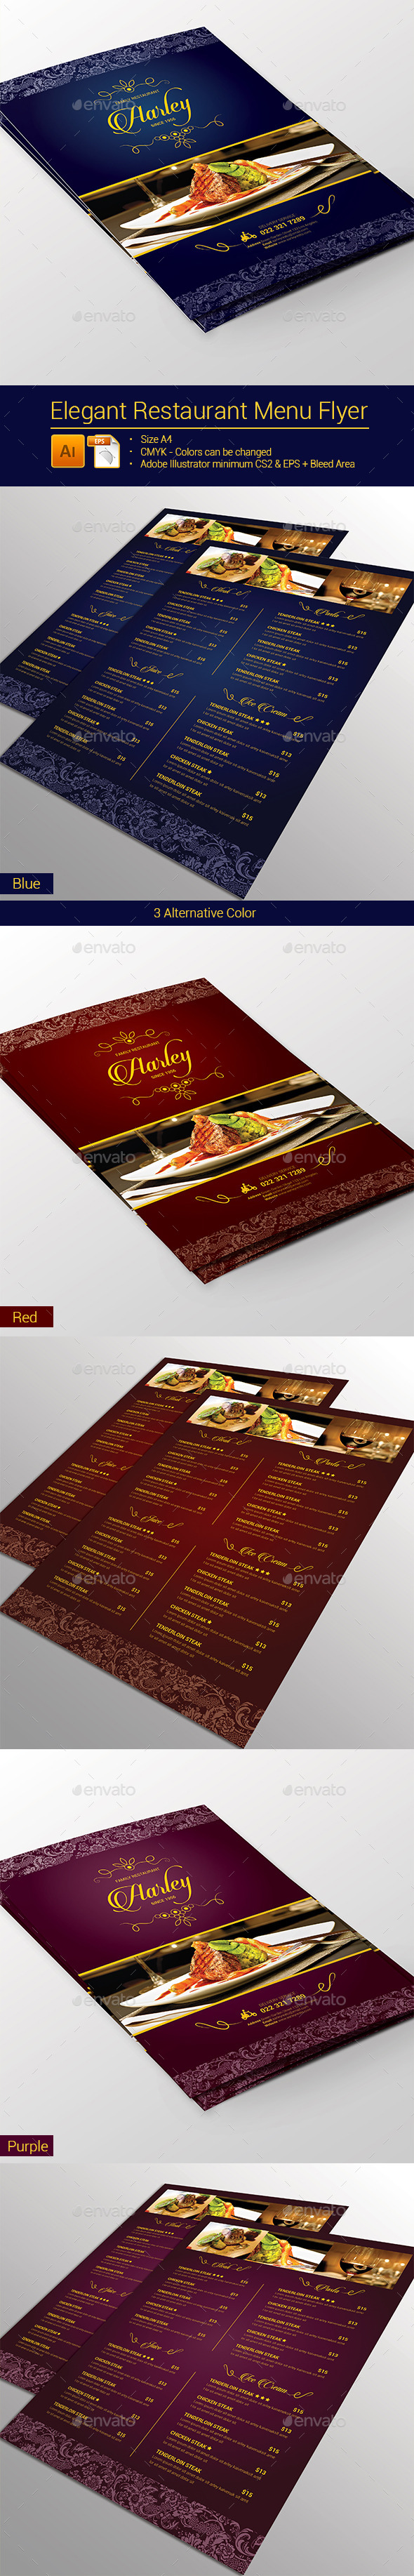 GraphicRiver Elegant Restaurant Menu Flyer 9219720